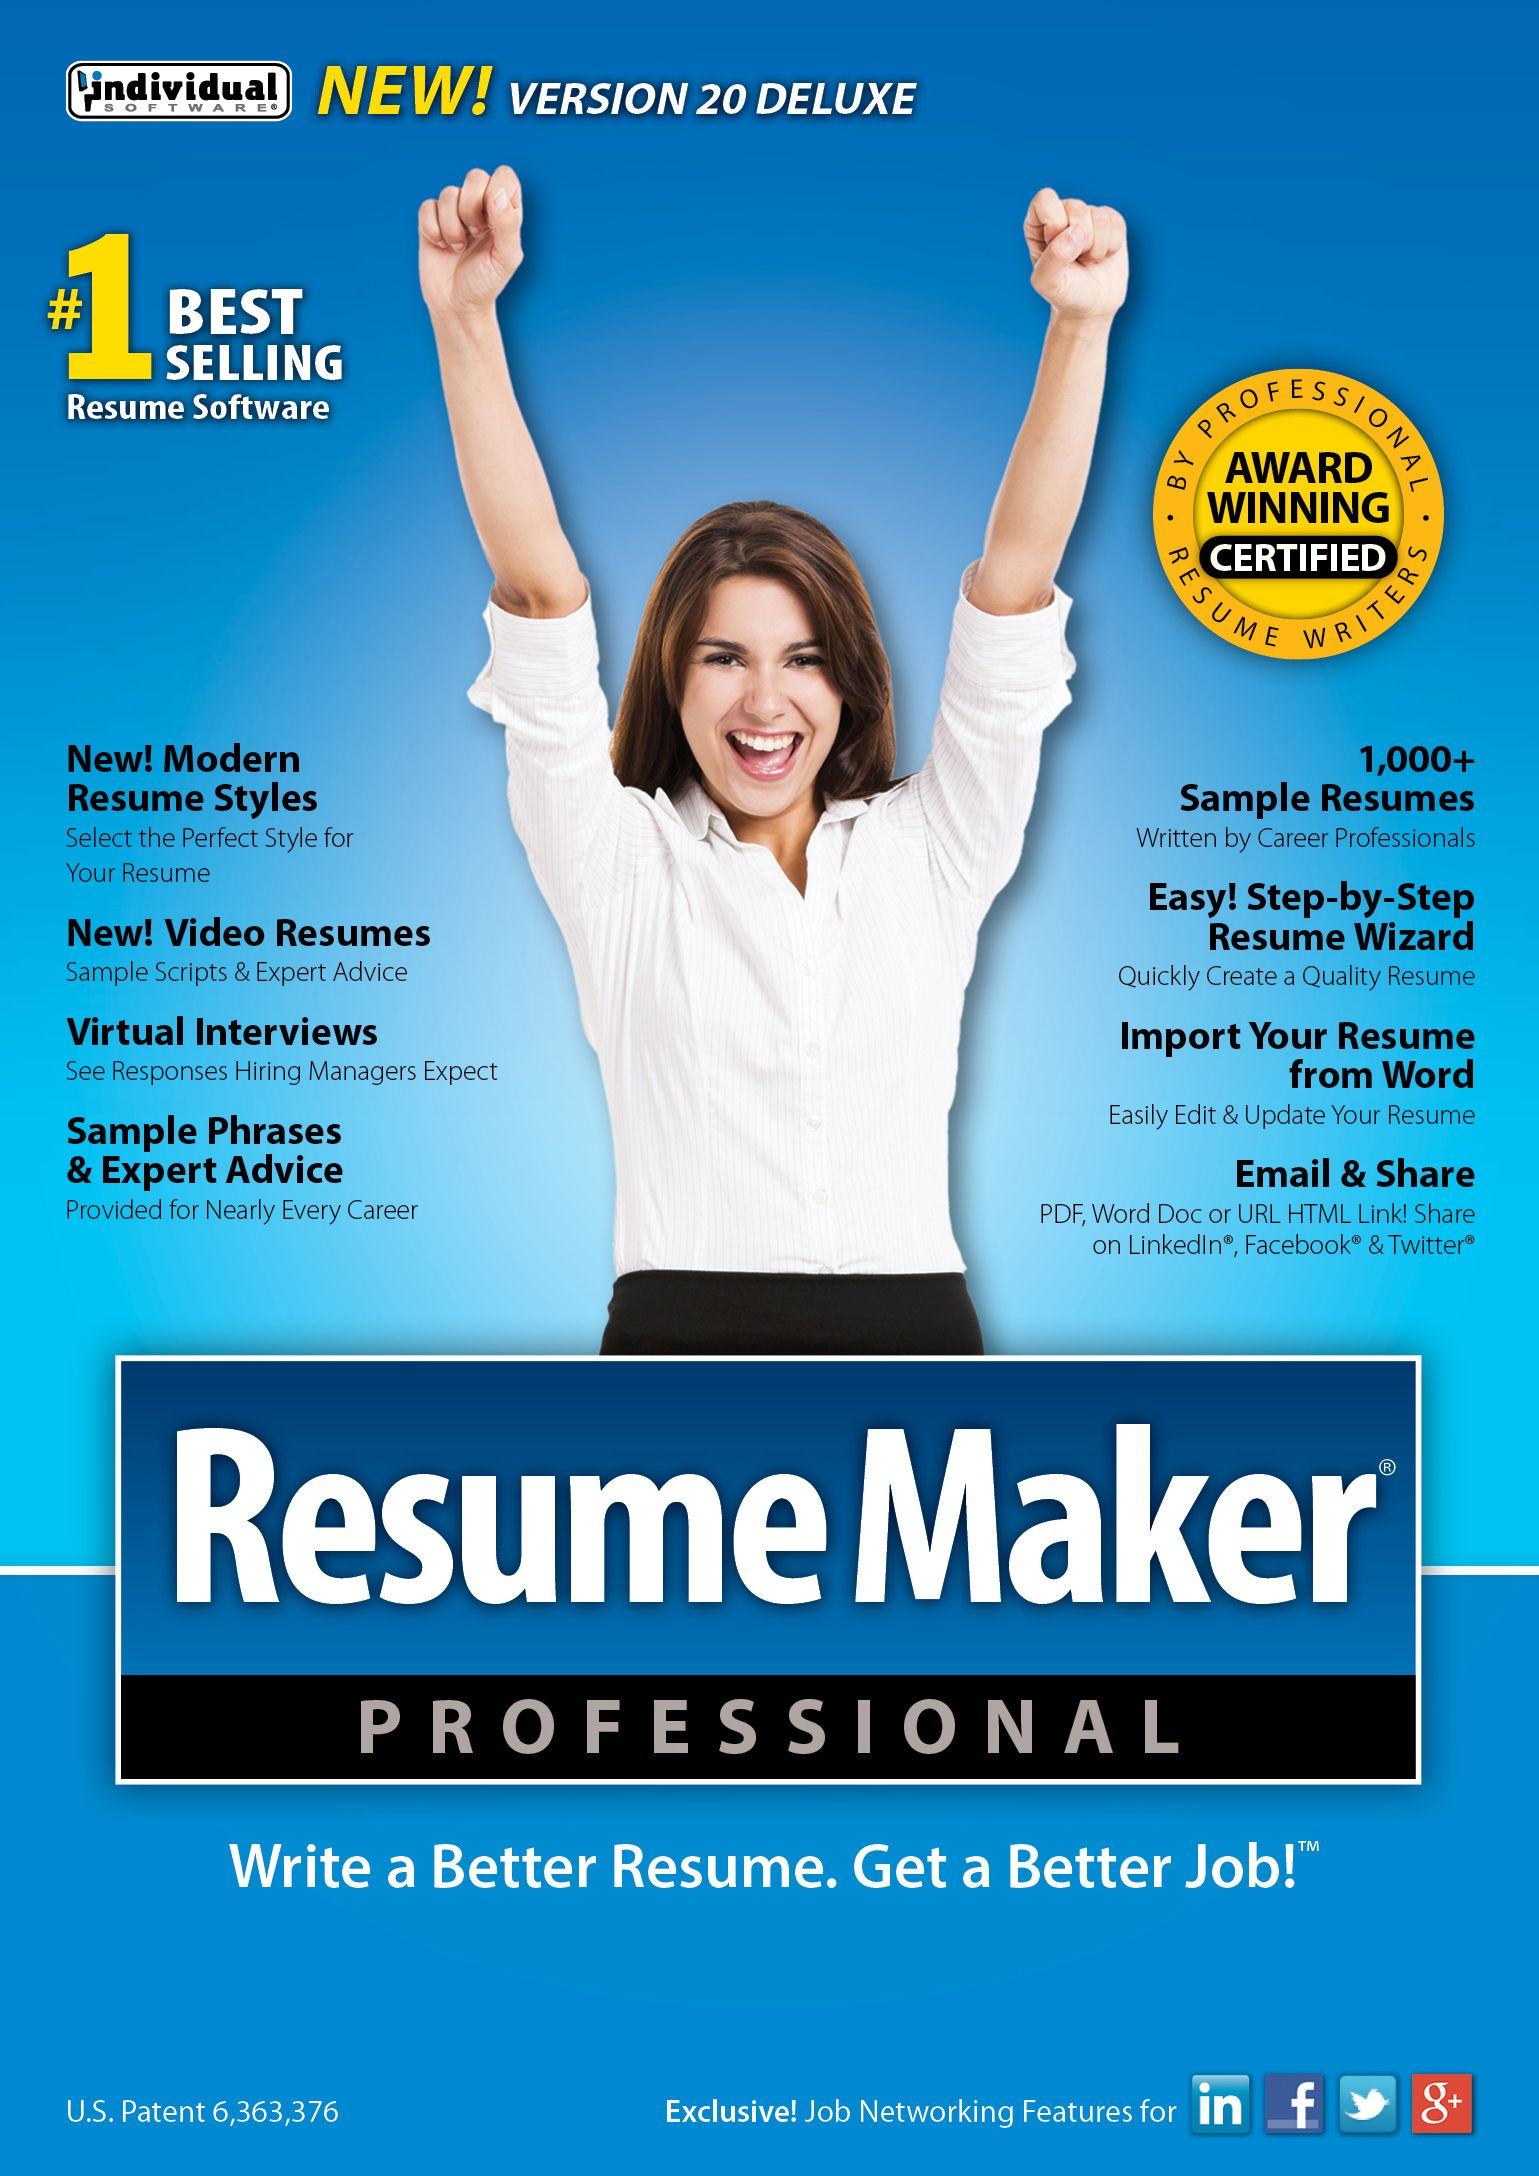 ResumeMaker Professional Deluxe 20 Free 3Day Trial Ind